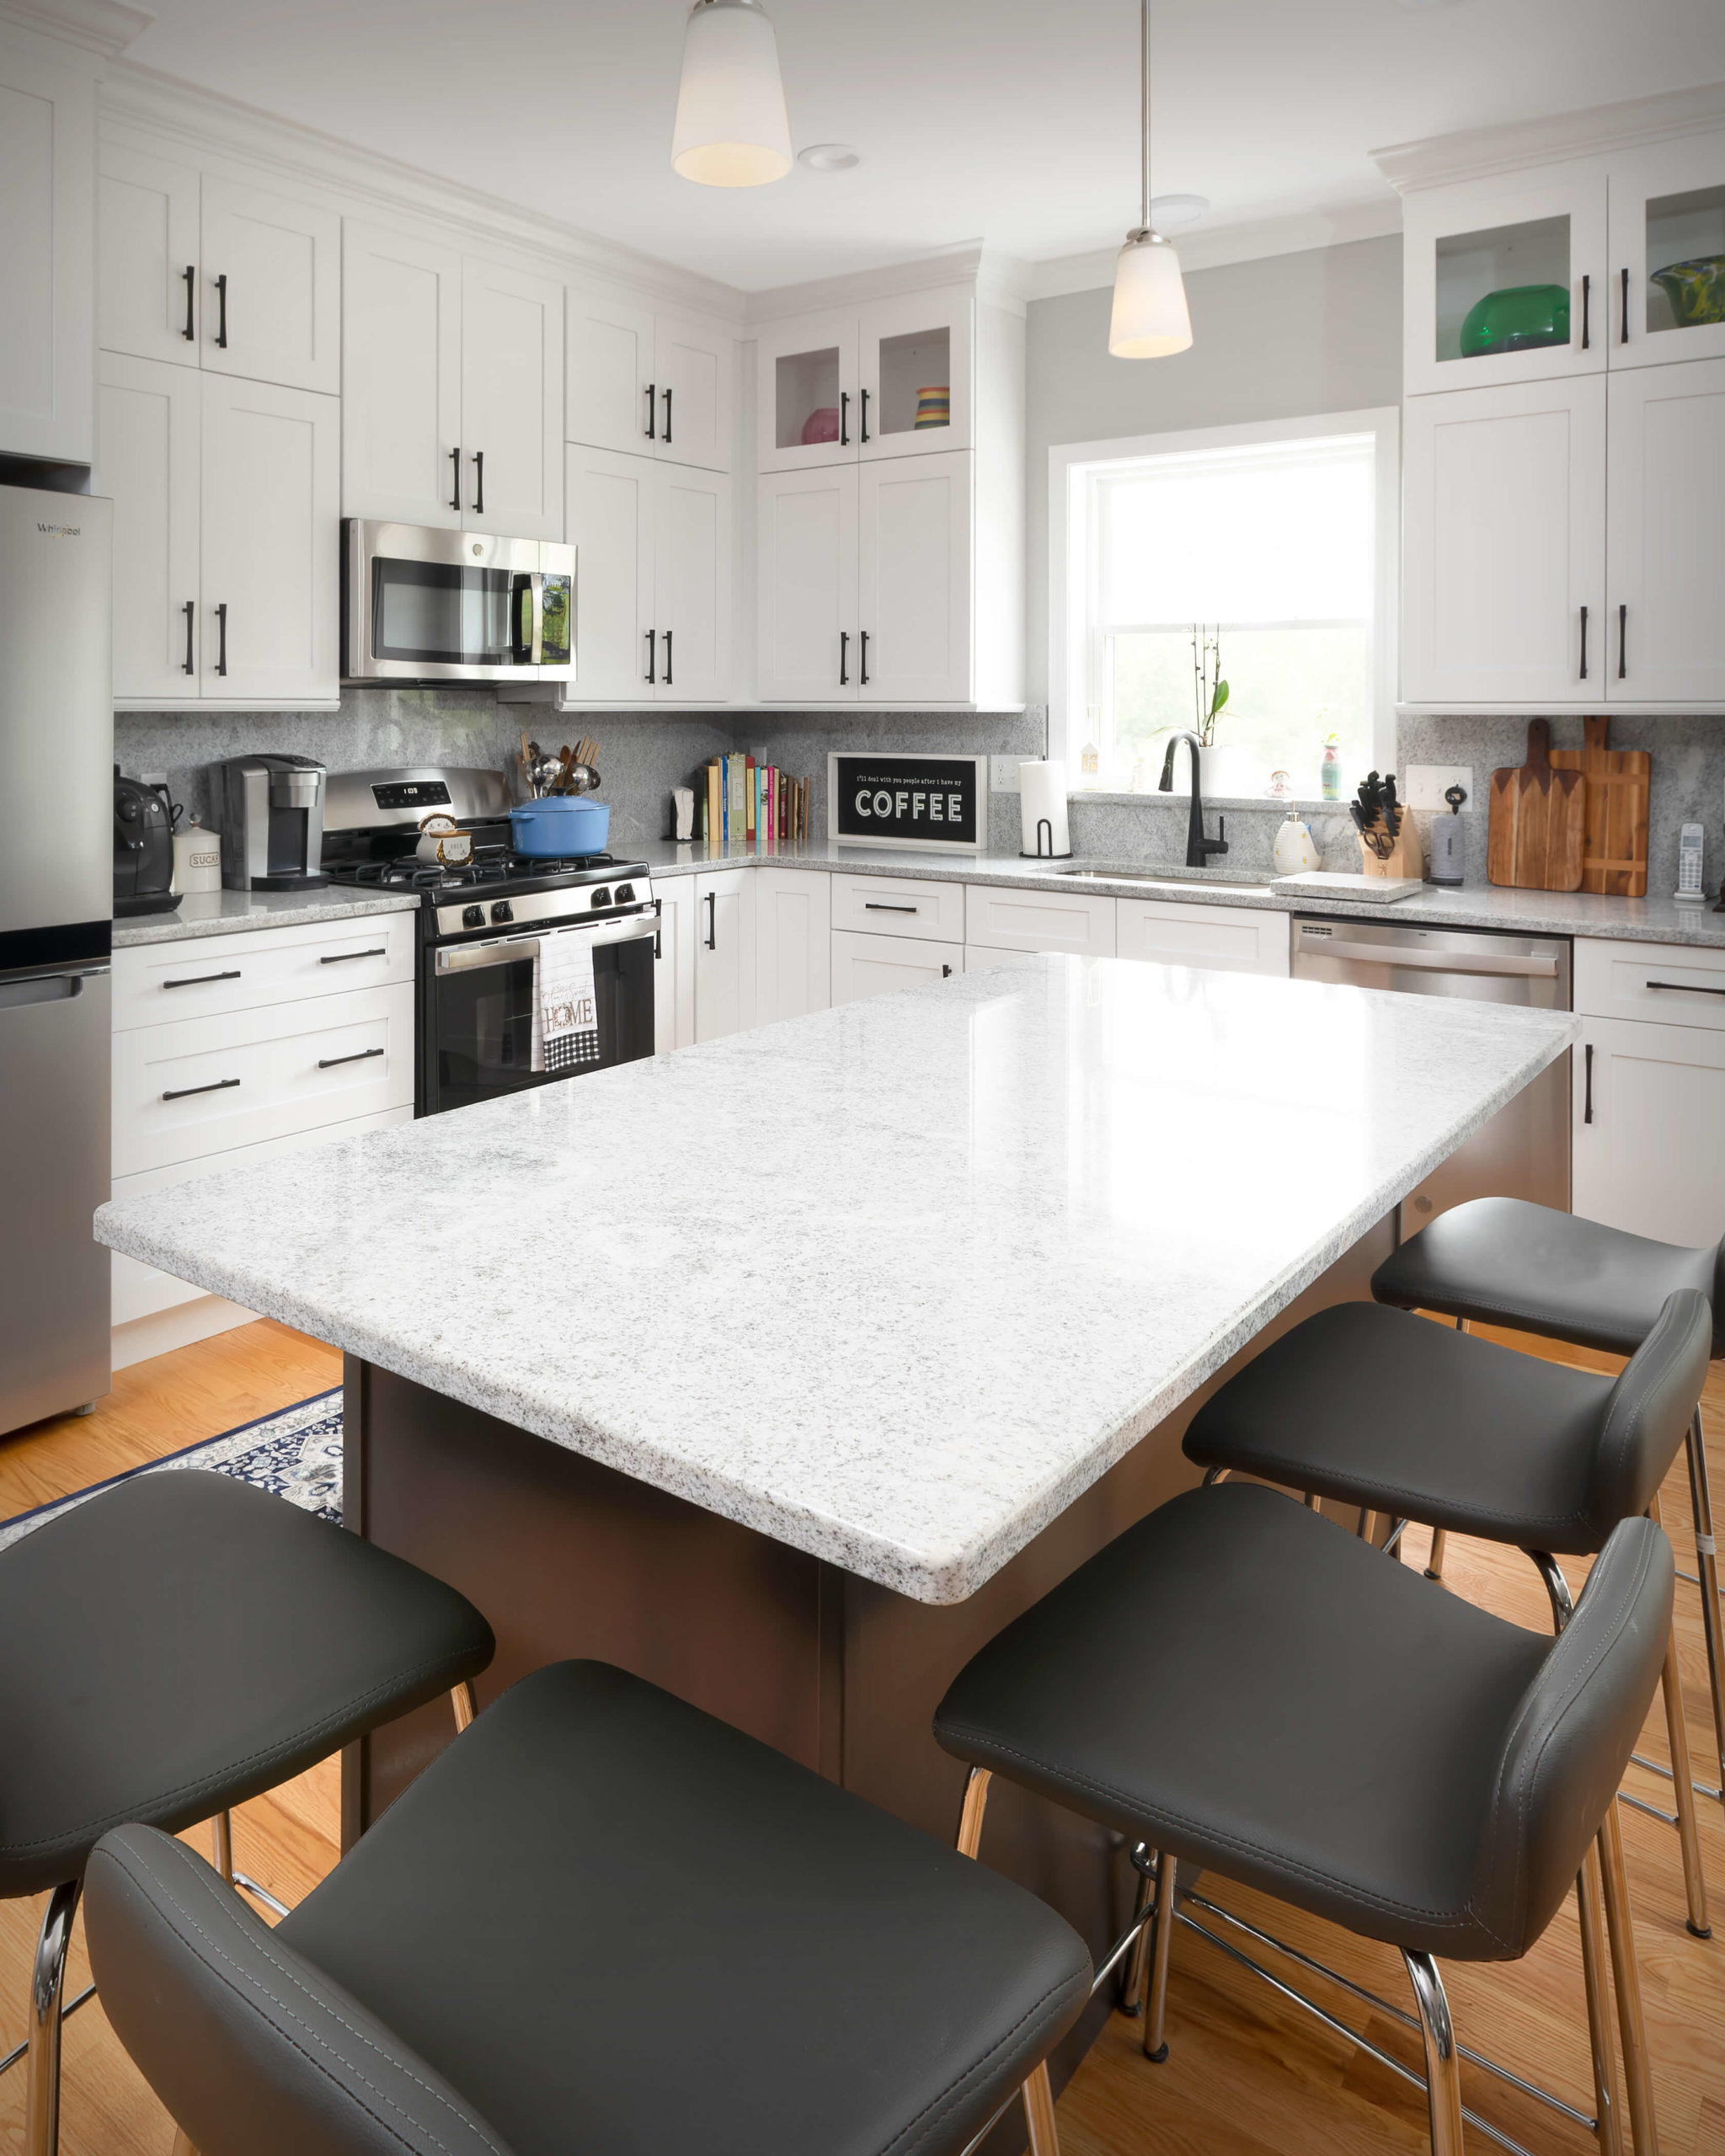 Detail view of island countertop in new kitchen and bathroom project in Middletown.